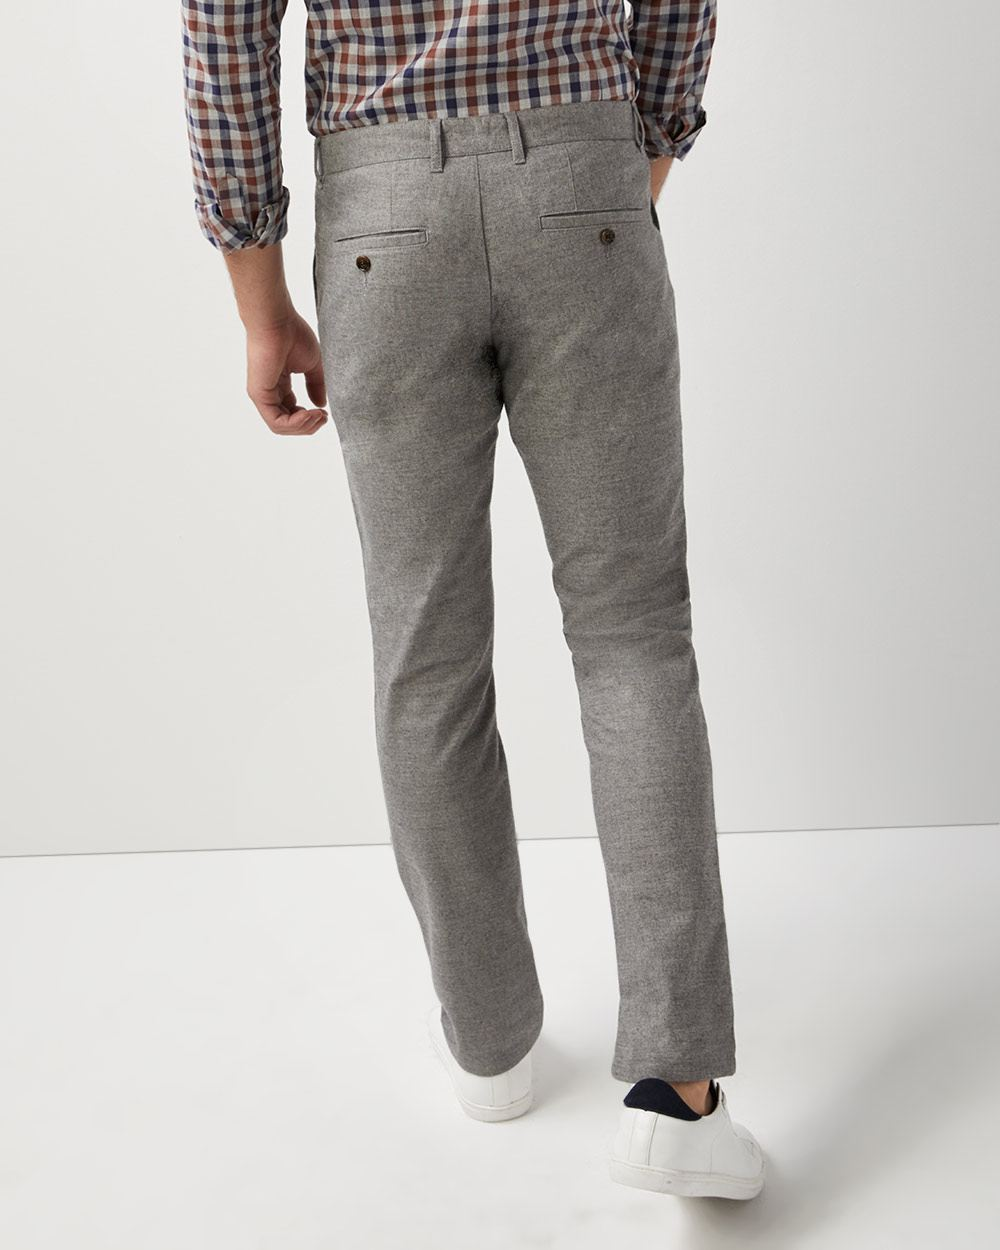 Slim fit brushed twill pant - 34''